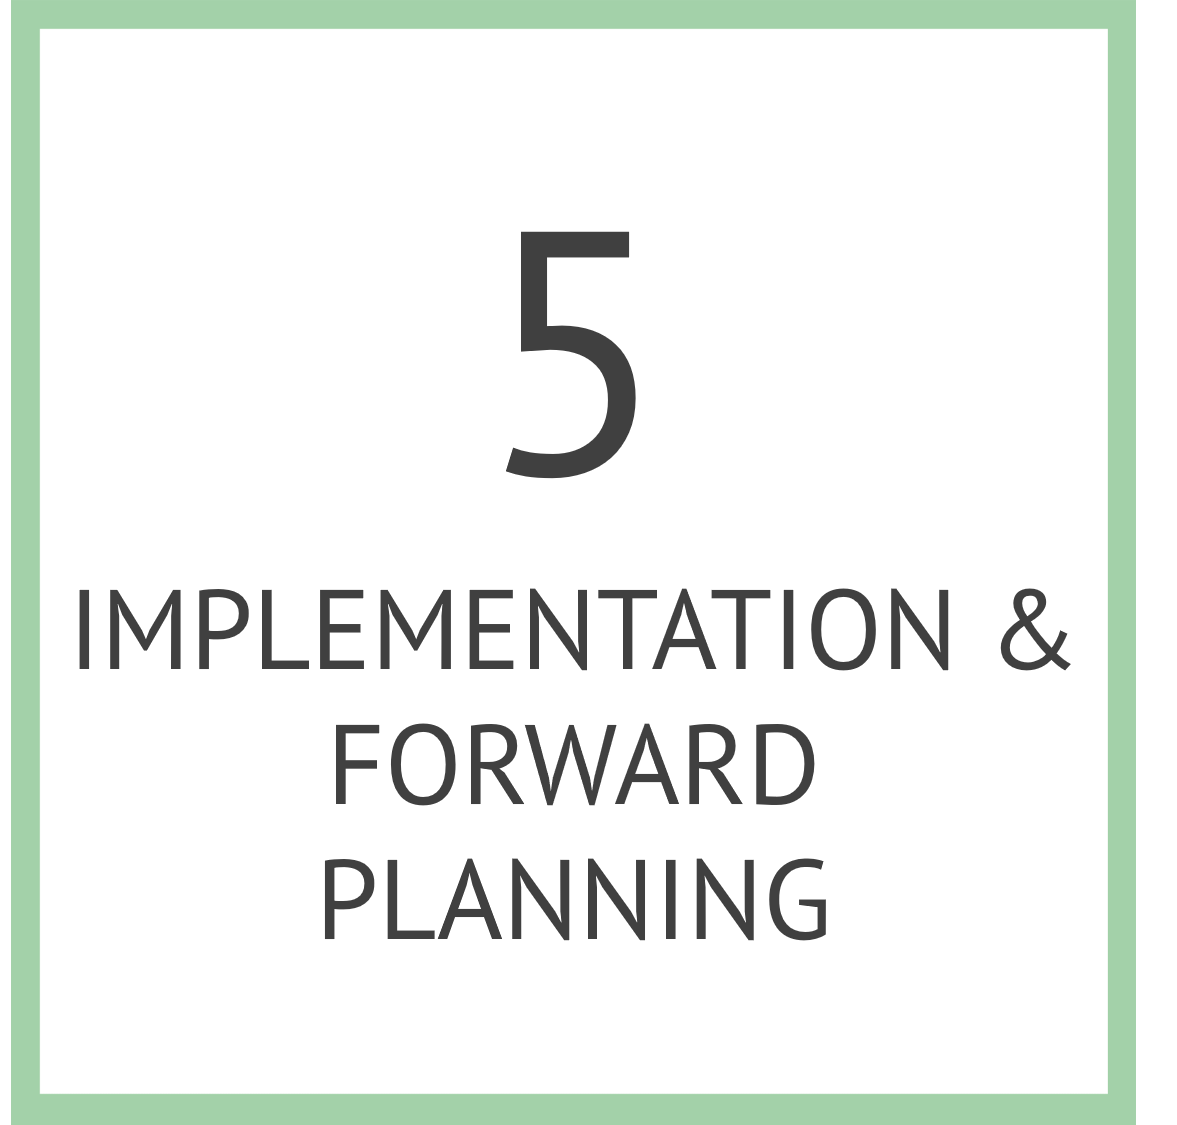 This stage enables us to put your plan into action, and to ensure that it continues to meet your lifestyle and financial objectives.  That starts with managing any immediate changes which we recommend, taking care of the paperwork and providing regular progress updates.  Looking to the future we'll communicate regularly with you to check that we're up to date with any changes to your circumstances which need to be incorporated into your plan. We'll also keep you informed of anything which could impact your plan.